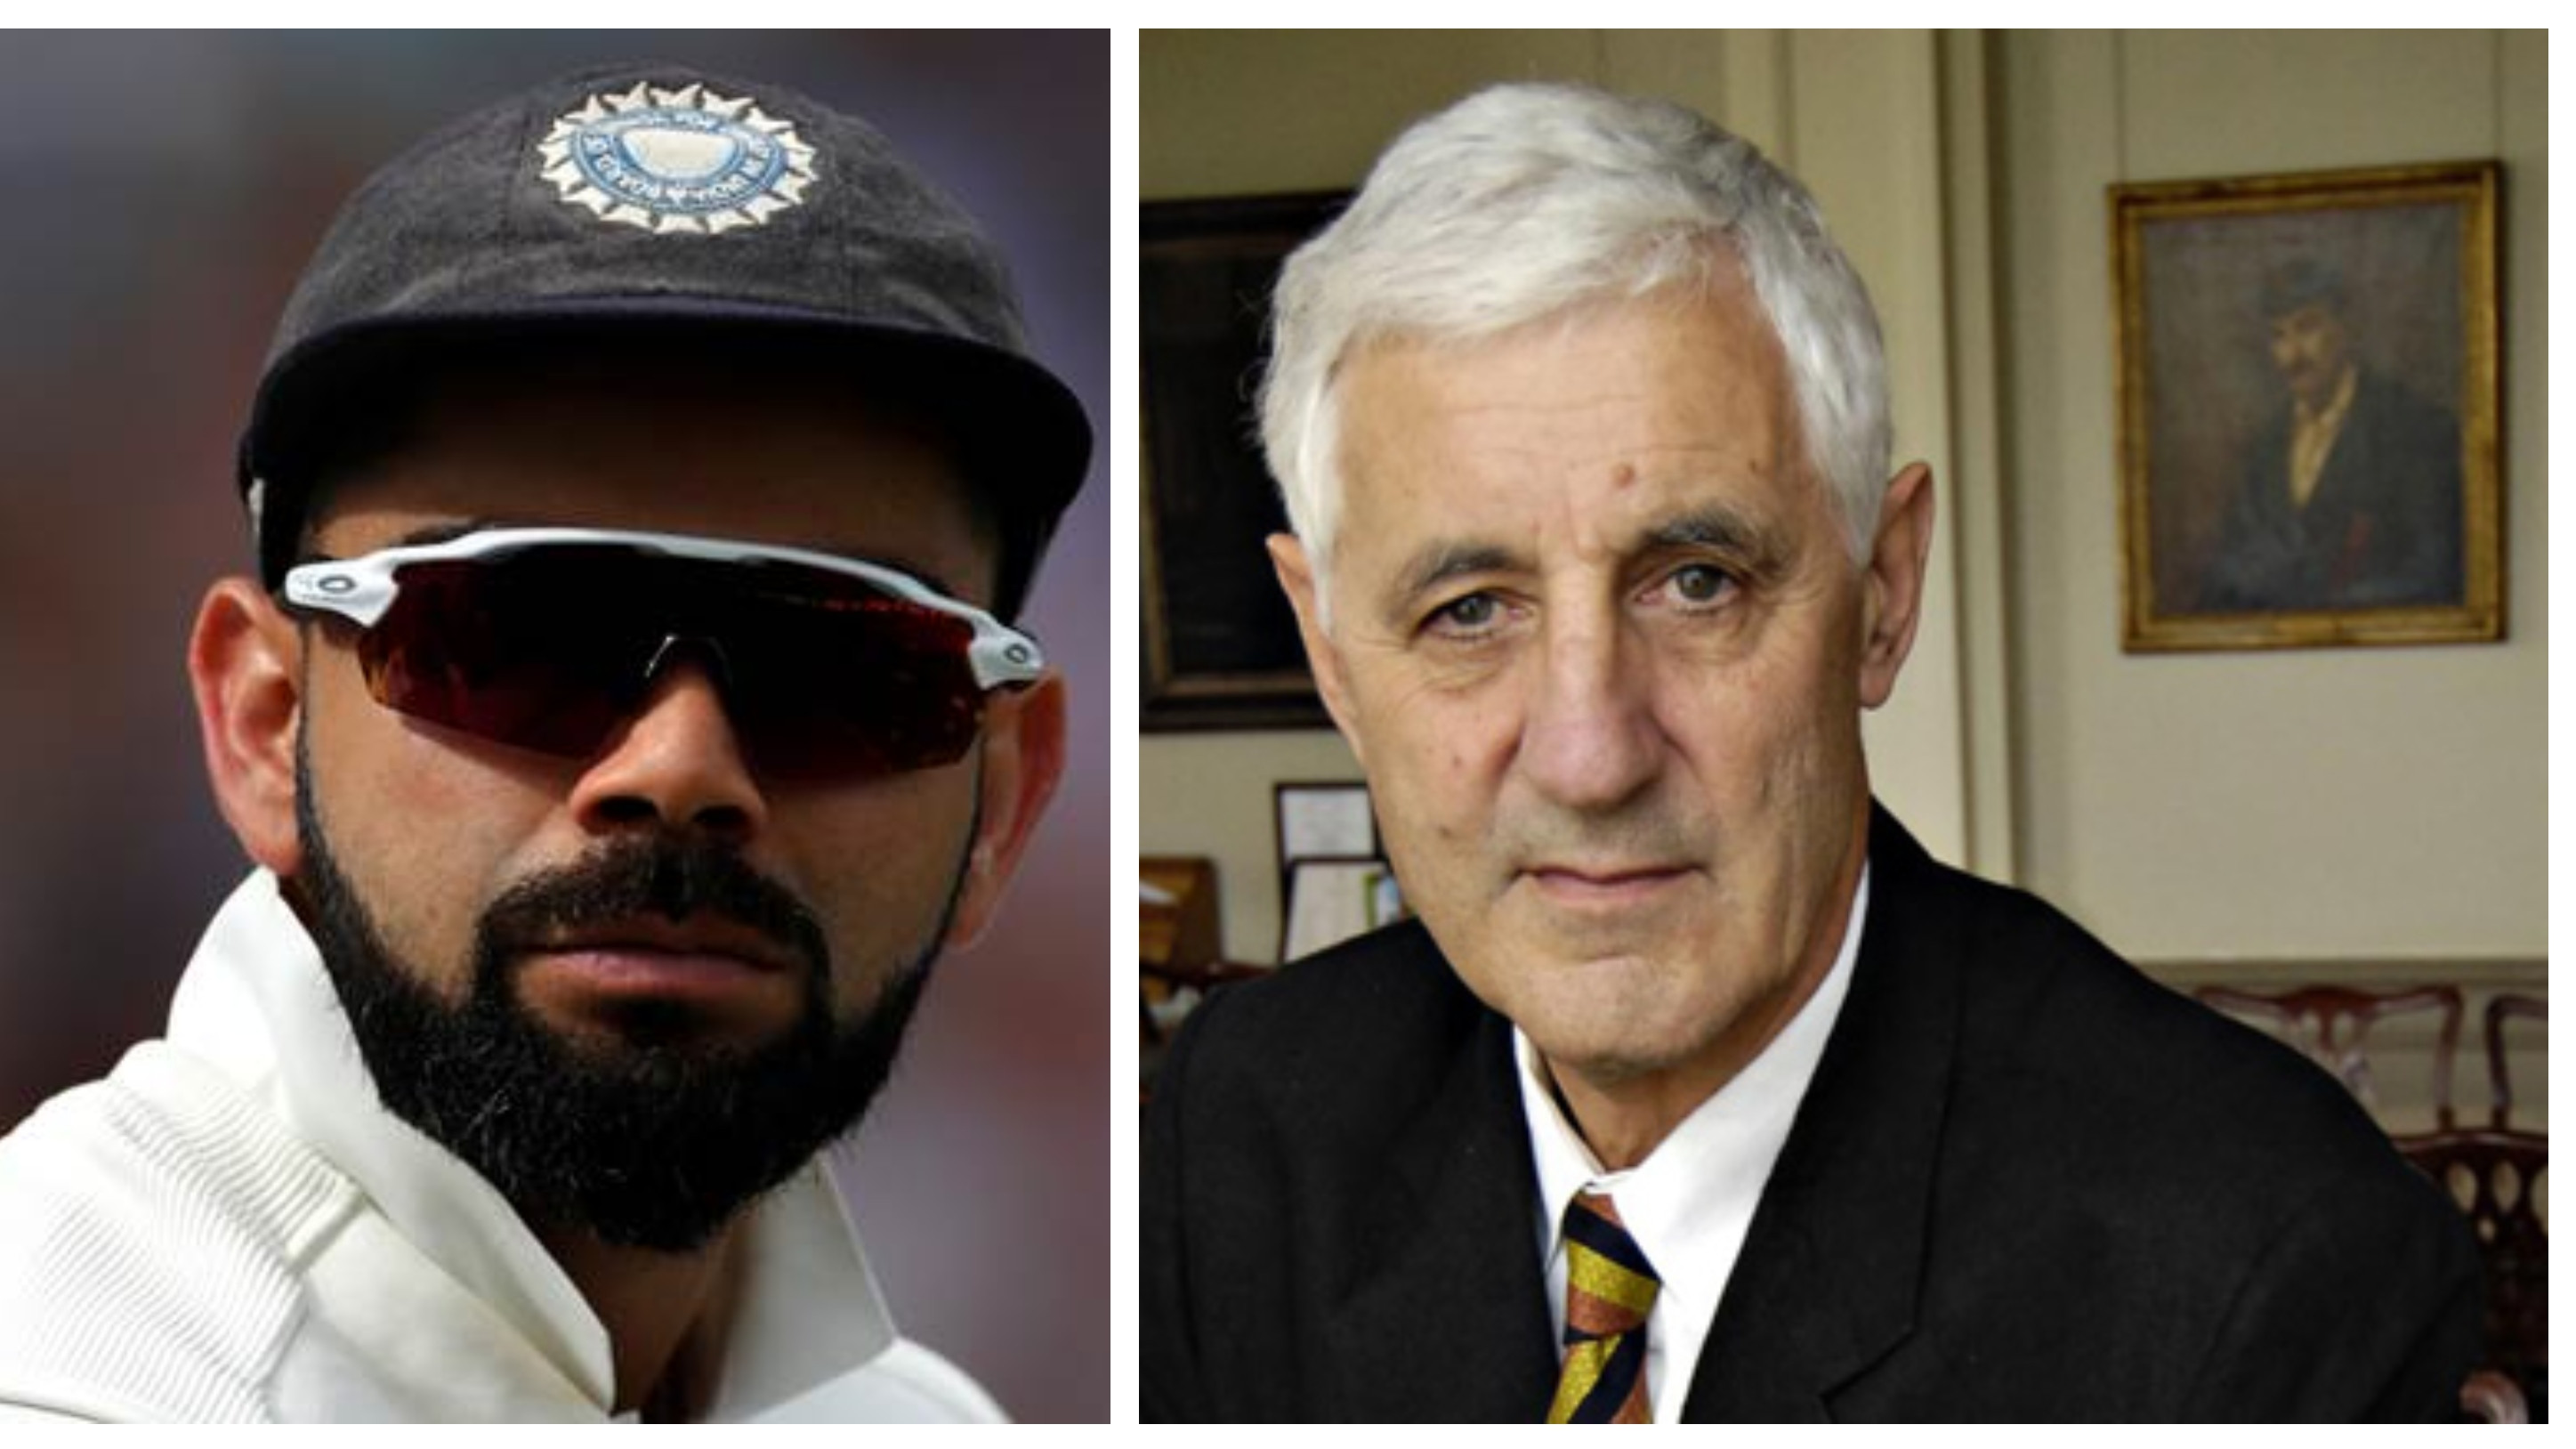 ENG vs IND 2018: Virat can get too authoritarian with his captaincy at times, says Mike Brearley